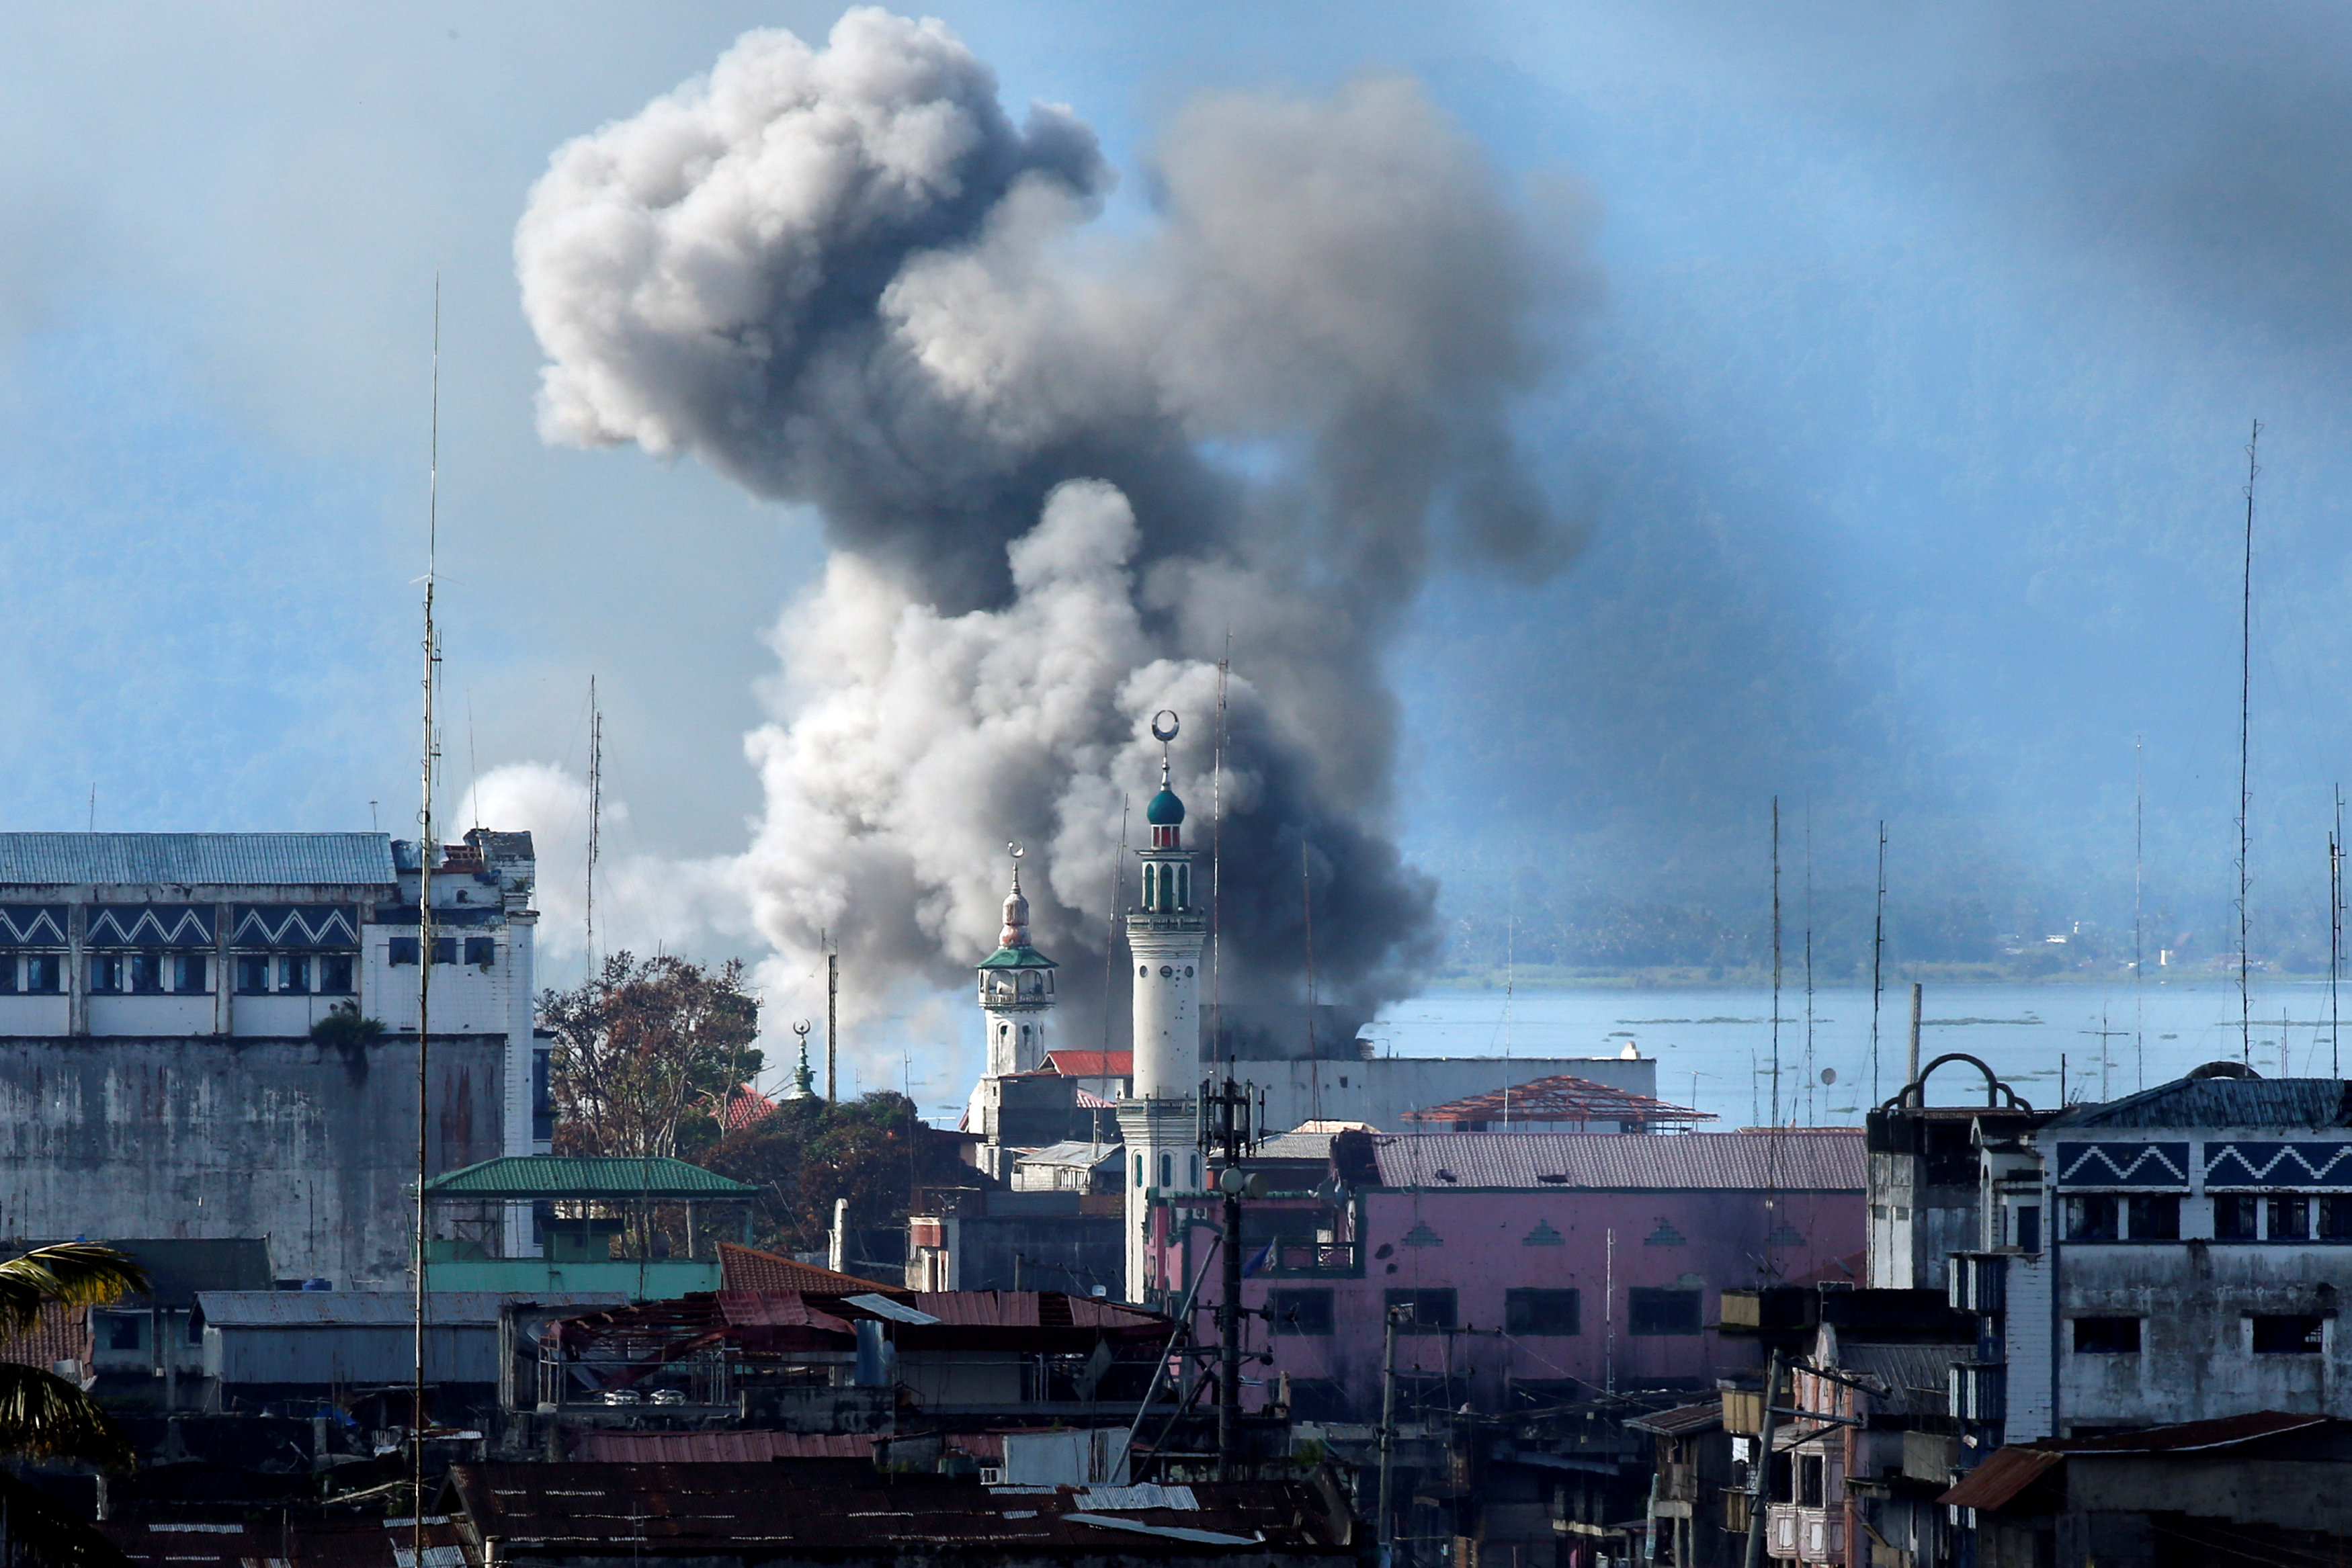 FILE PHOTO: An explosion is seen after a Philippines army aircraft released a bomb during an airstrike as government troops continue their assault against insurgents from the Maute group in Marawi city June 27, 2017. REUTERS/Jorge Silva/File Photo